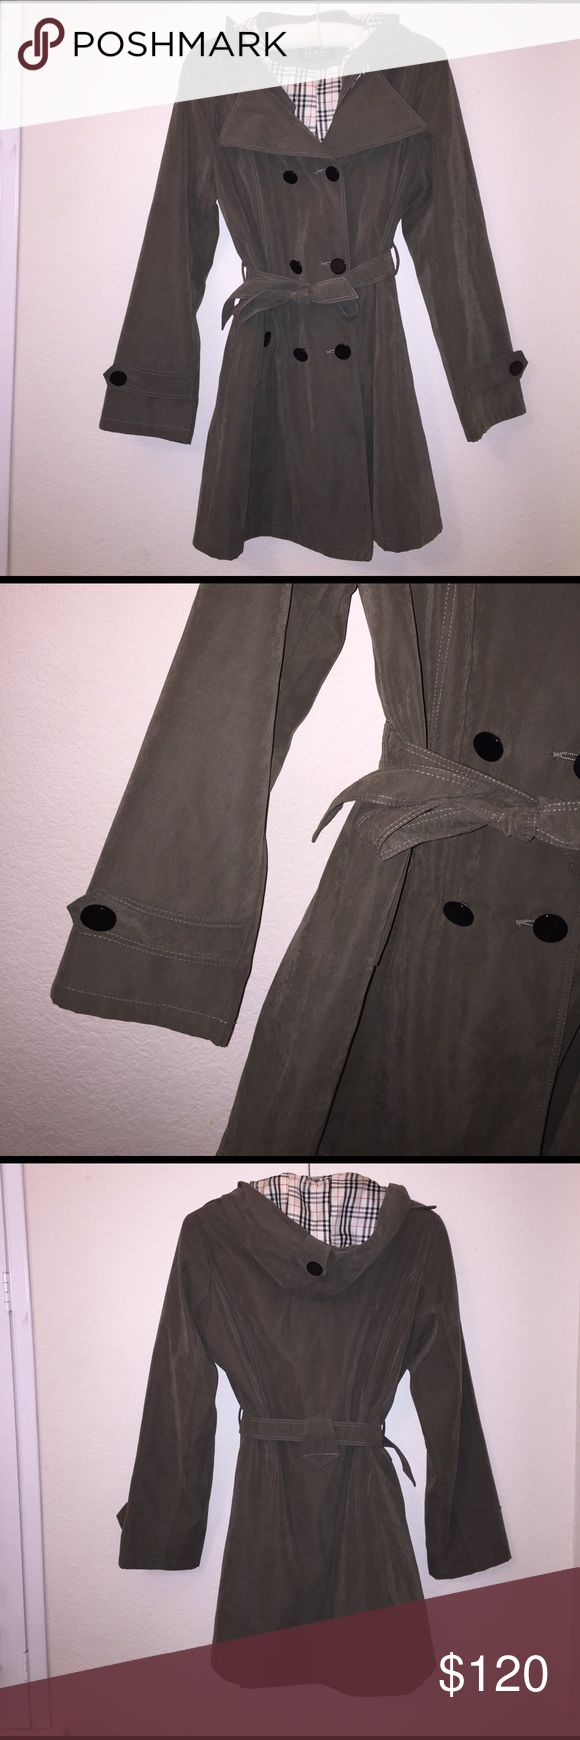 """Dolce & Gabbana Short Trench Coat Olive green micro suede short trench in excellent condition! Measurements: Armpit: 19"""" Shoulder: 17"""" Length: 29"""" Arms: 22"""". No flaws. Feel free to ask any questions! Dolce & Gabbana Jackets & Coats Trench Coats"""